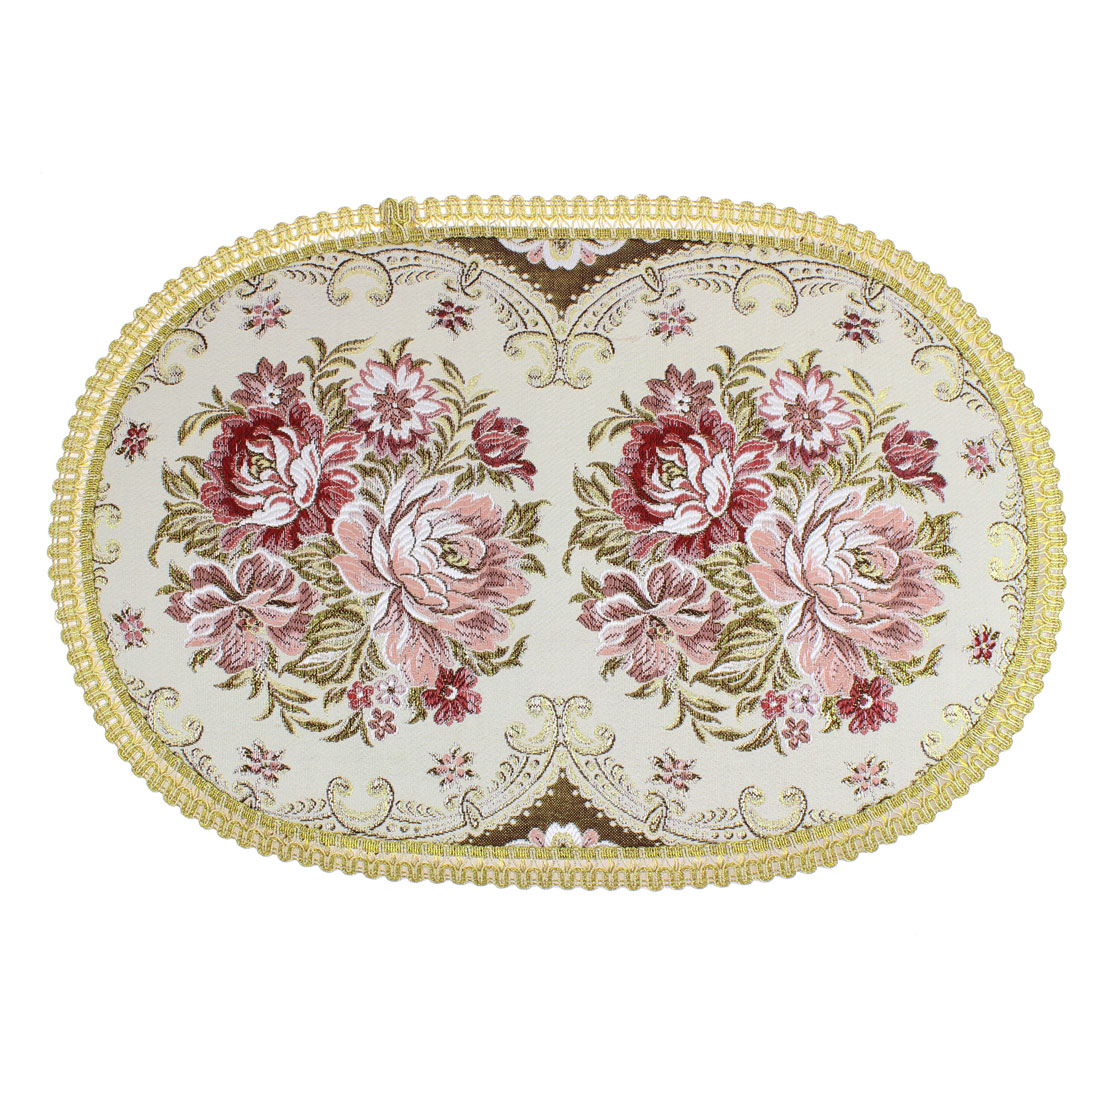 "Flowers Embroidered Pattern Oval Shaped Table Mat 19"" x 12.5"""